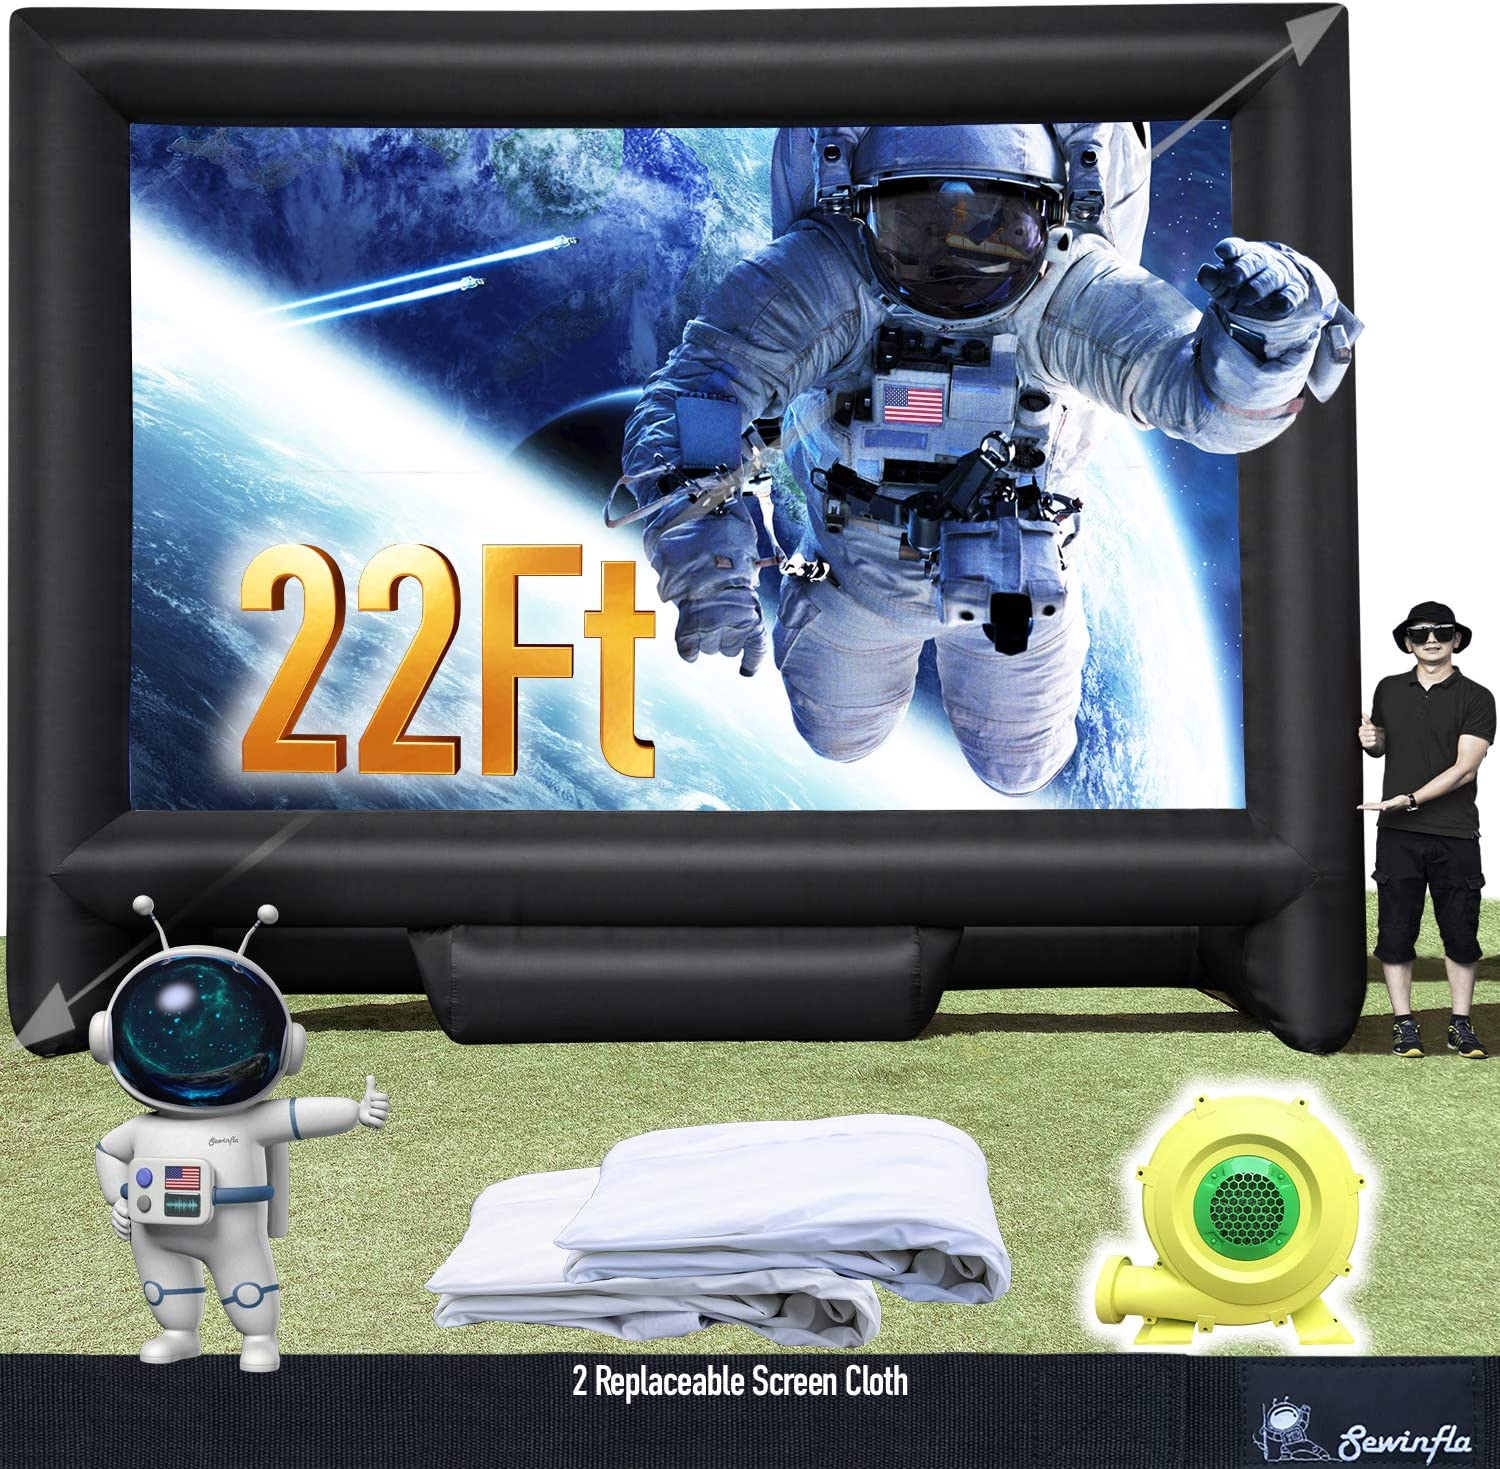 Sewinfla 22Ft Sales results Max 85% OFF No. 1 Outdoor and Indoor Projector Scre Movie Inflatable